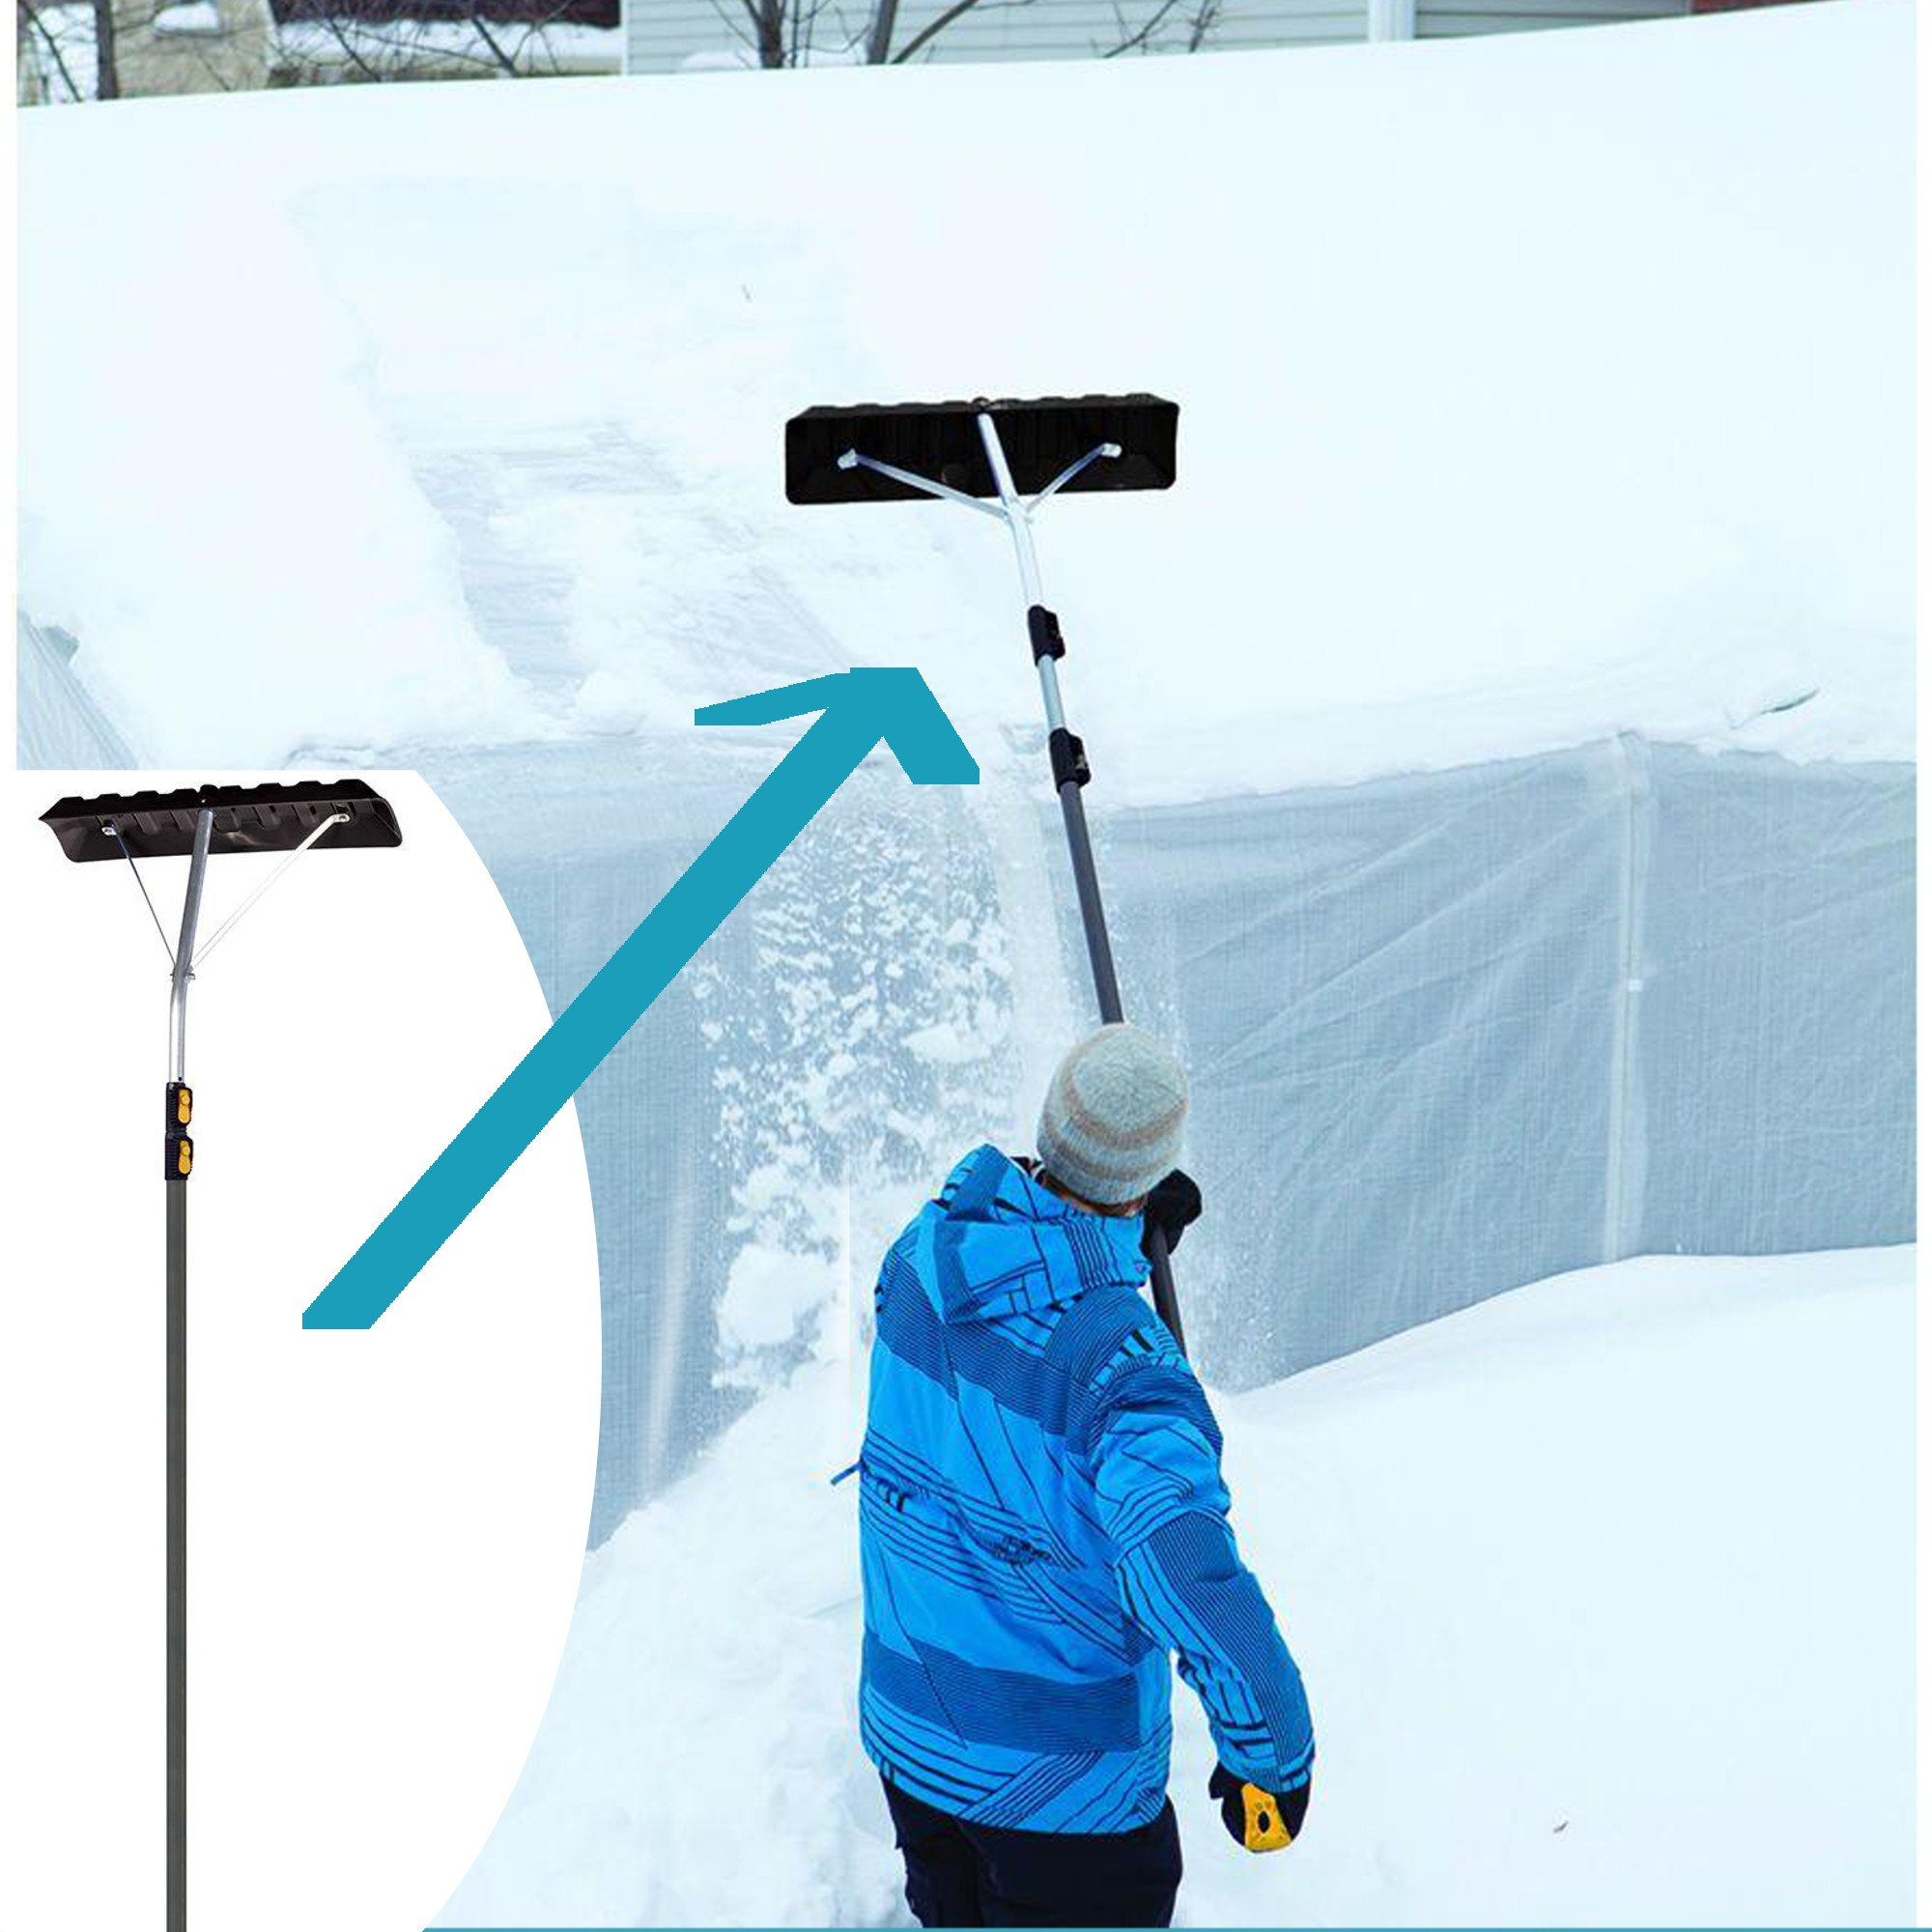 Non-Slip Handle Extends To17 Ft. Telescoping Roof Rake w/ 24 In. Poly Blade, Collapsible For Easy Storage, Use From The Ground, No Ladder Needed Clears Roof Of Dangerous Snow Build-Up by True Temper (Image #1)